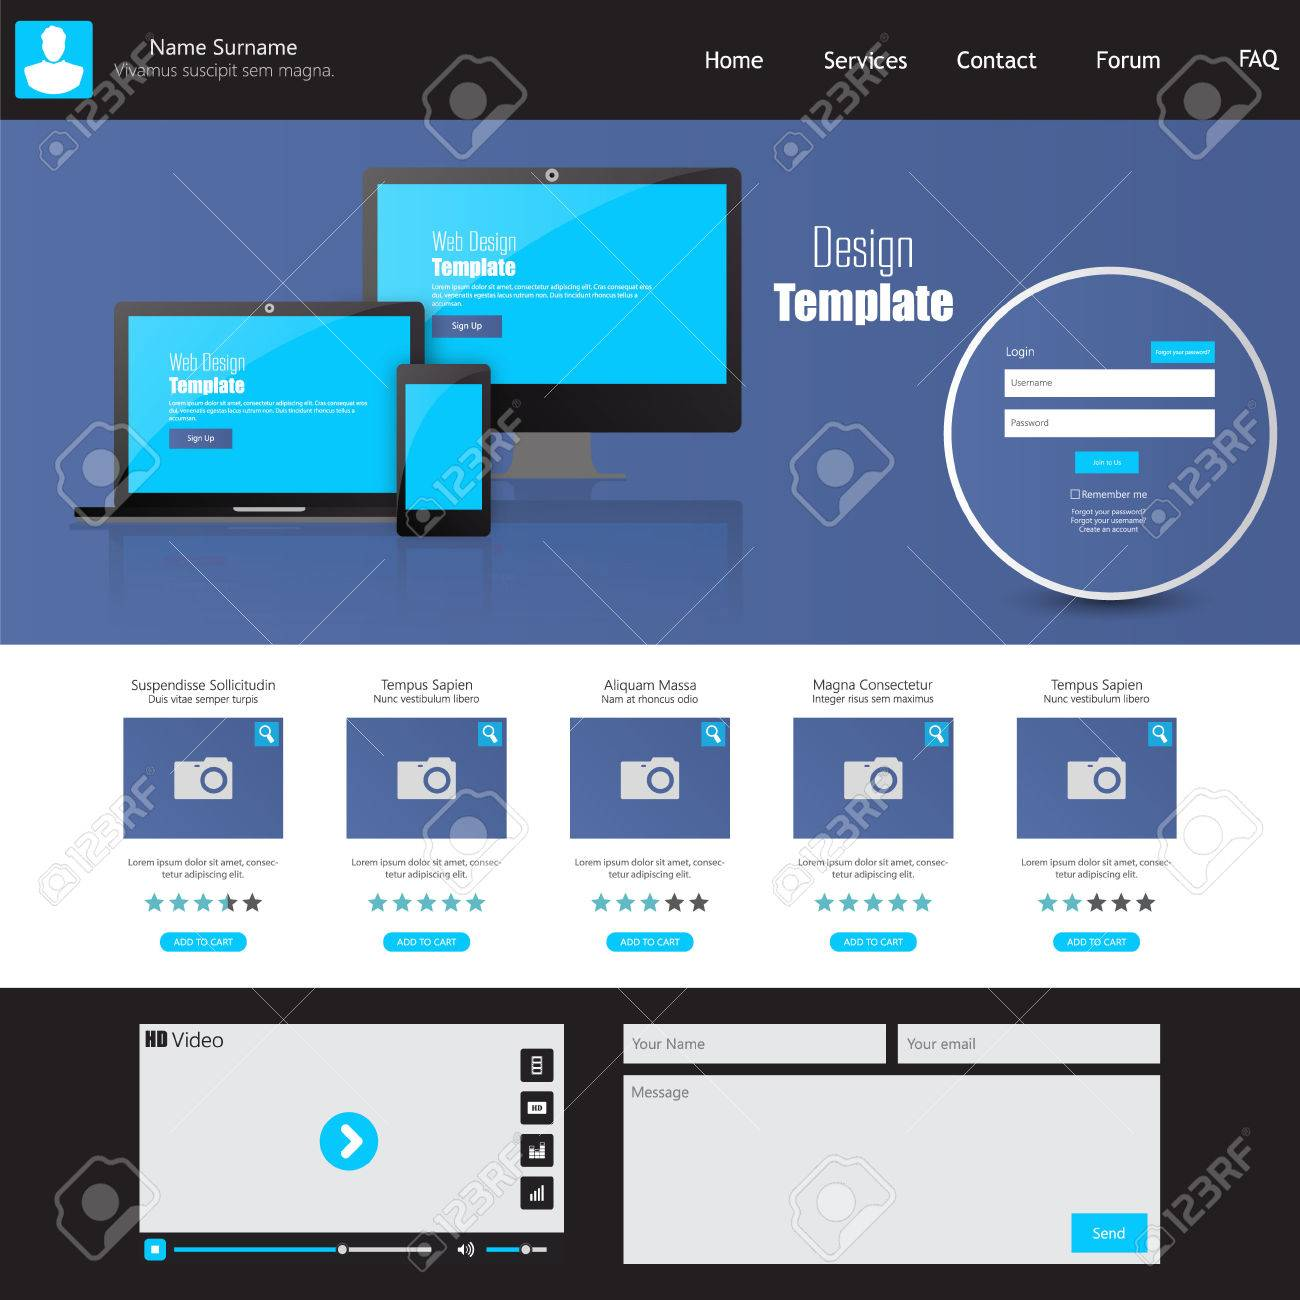 Business website template home page design clean and simple business website template home page design clean and simple vector illustration stock vector flashek Choice Image